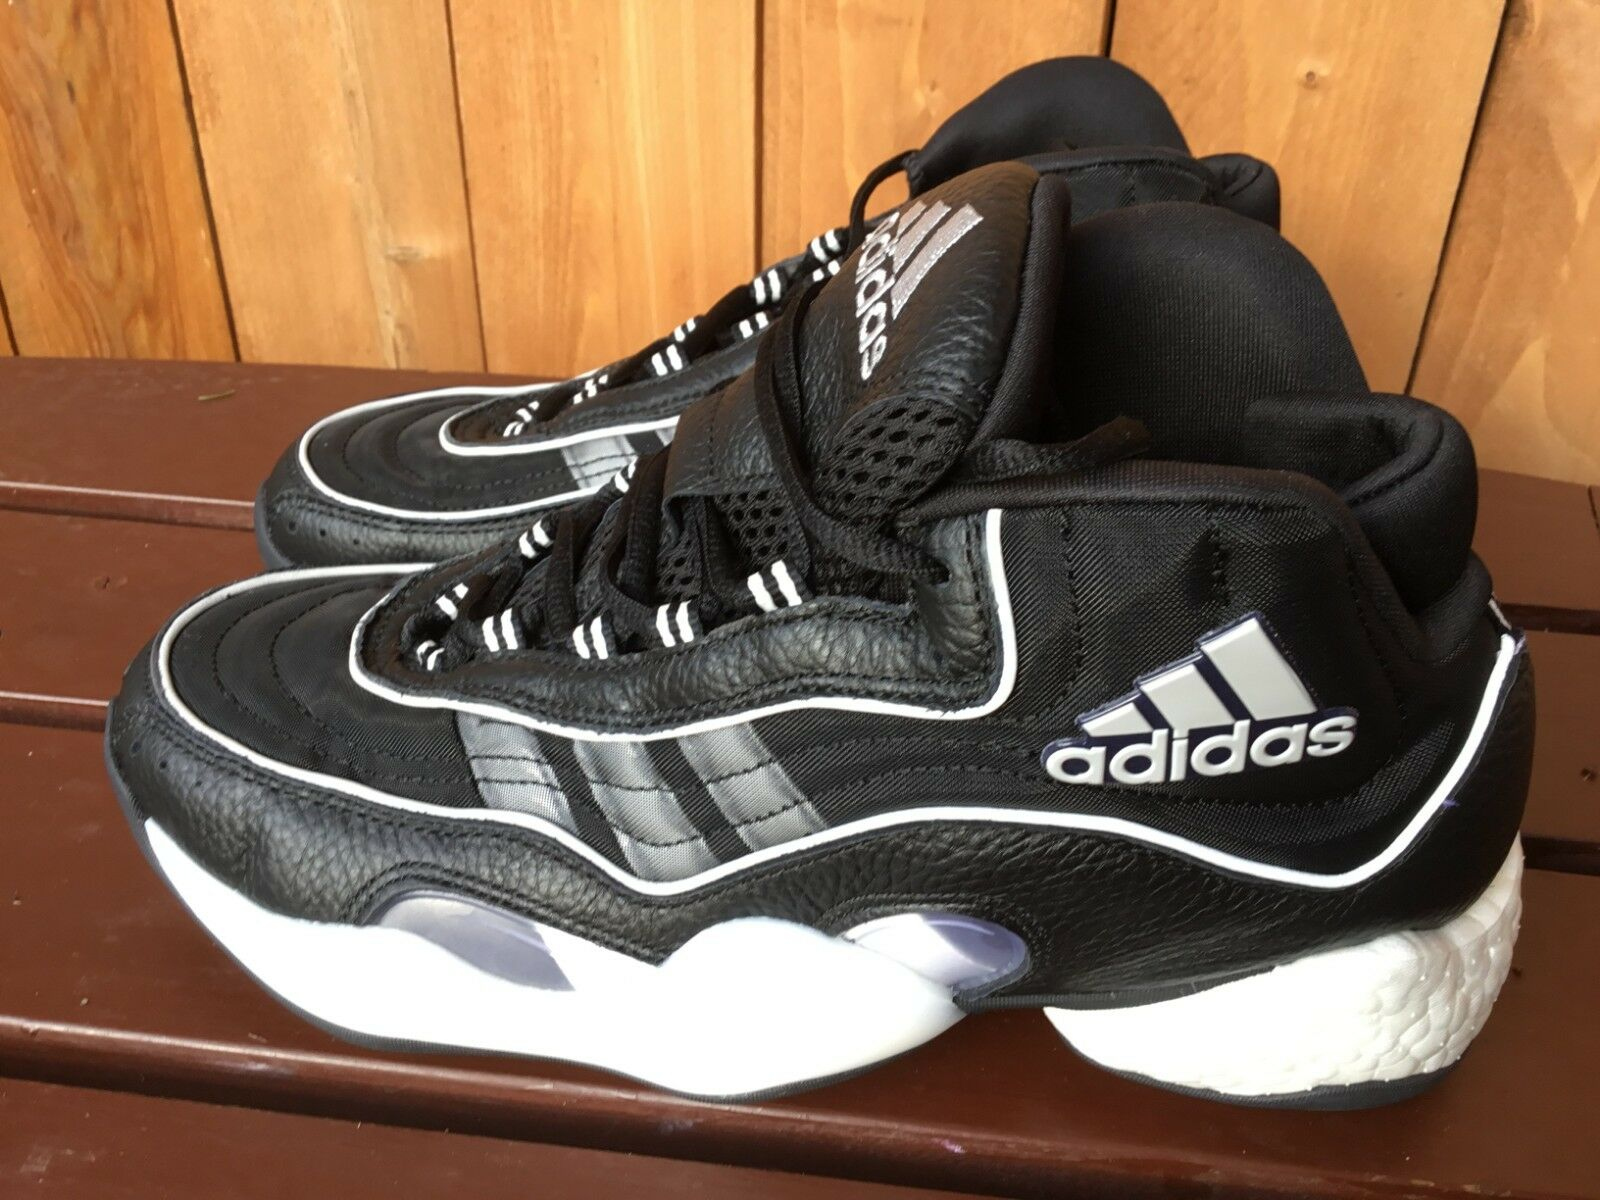 Adidas 98 x Crazy BYW men's black basketball shoes sneakers multiple size G26807